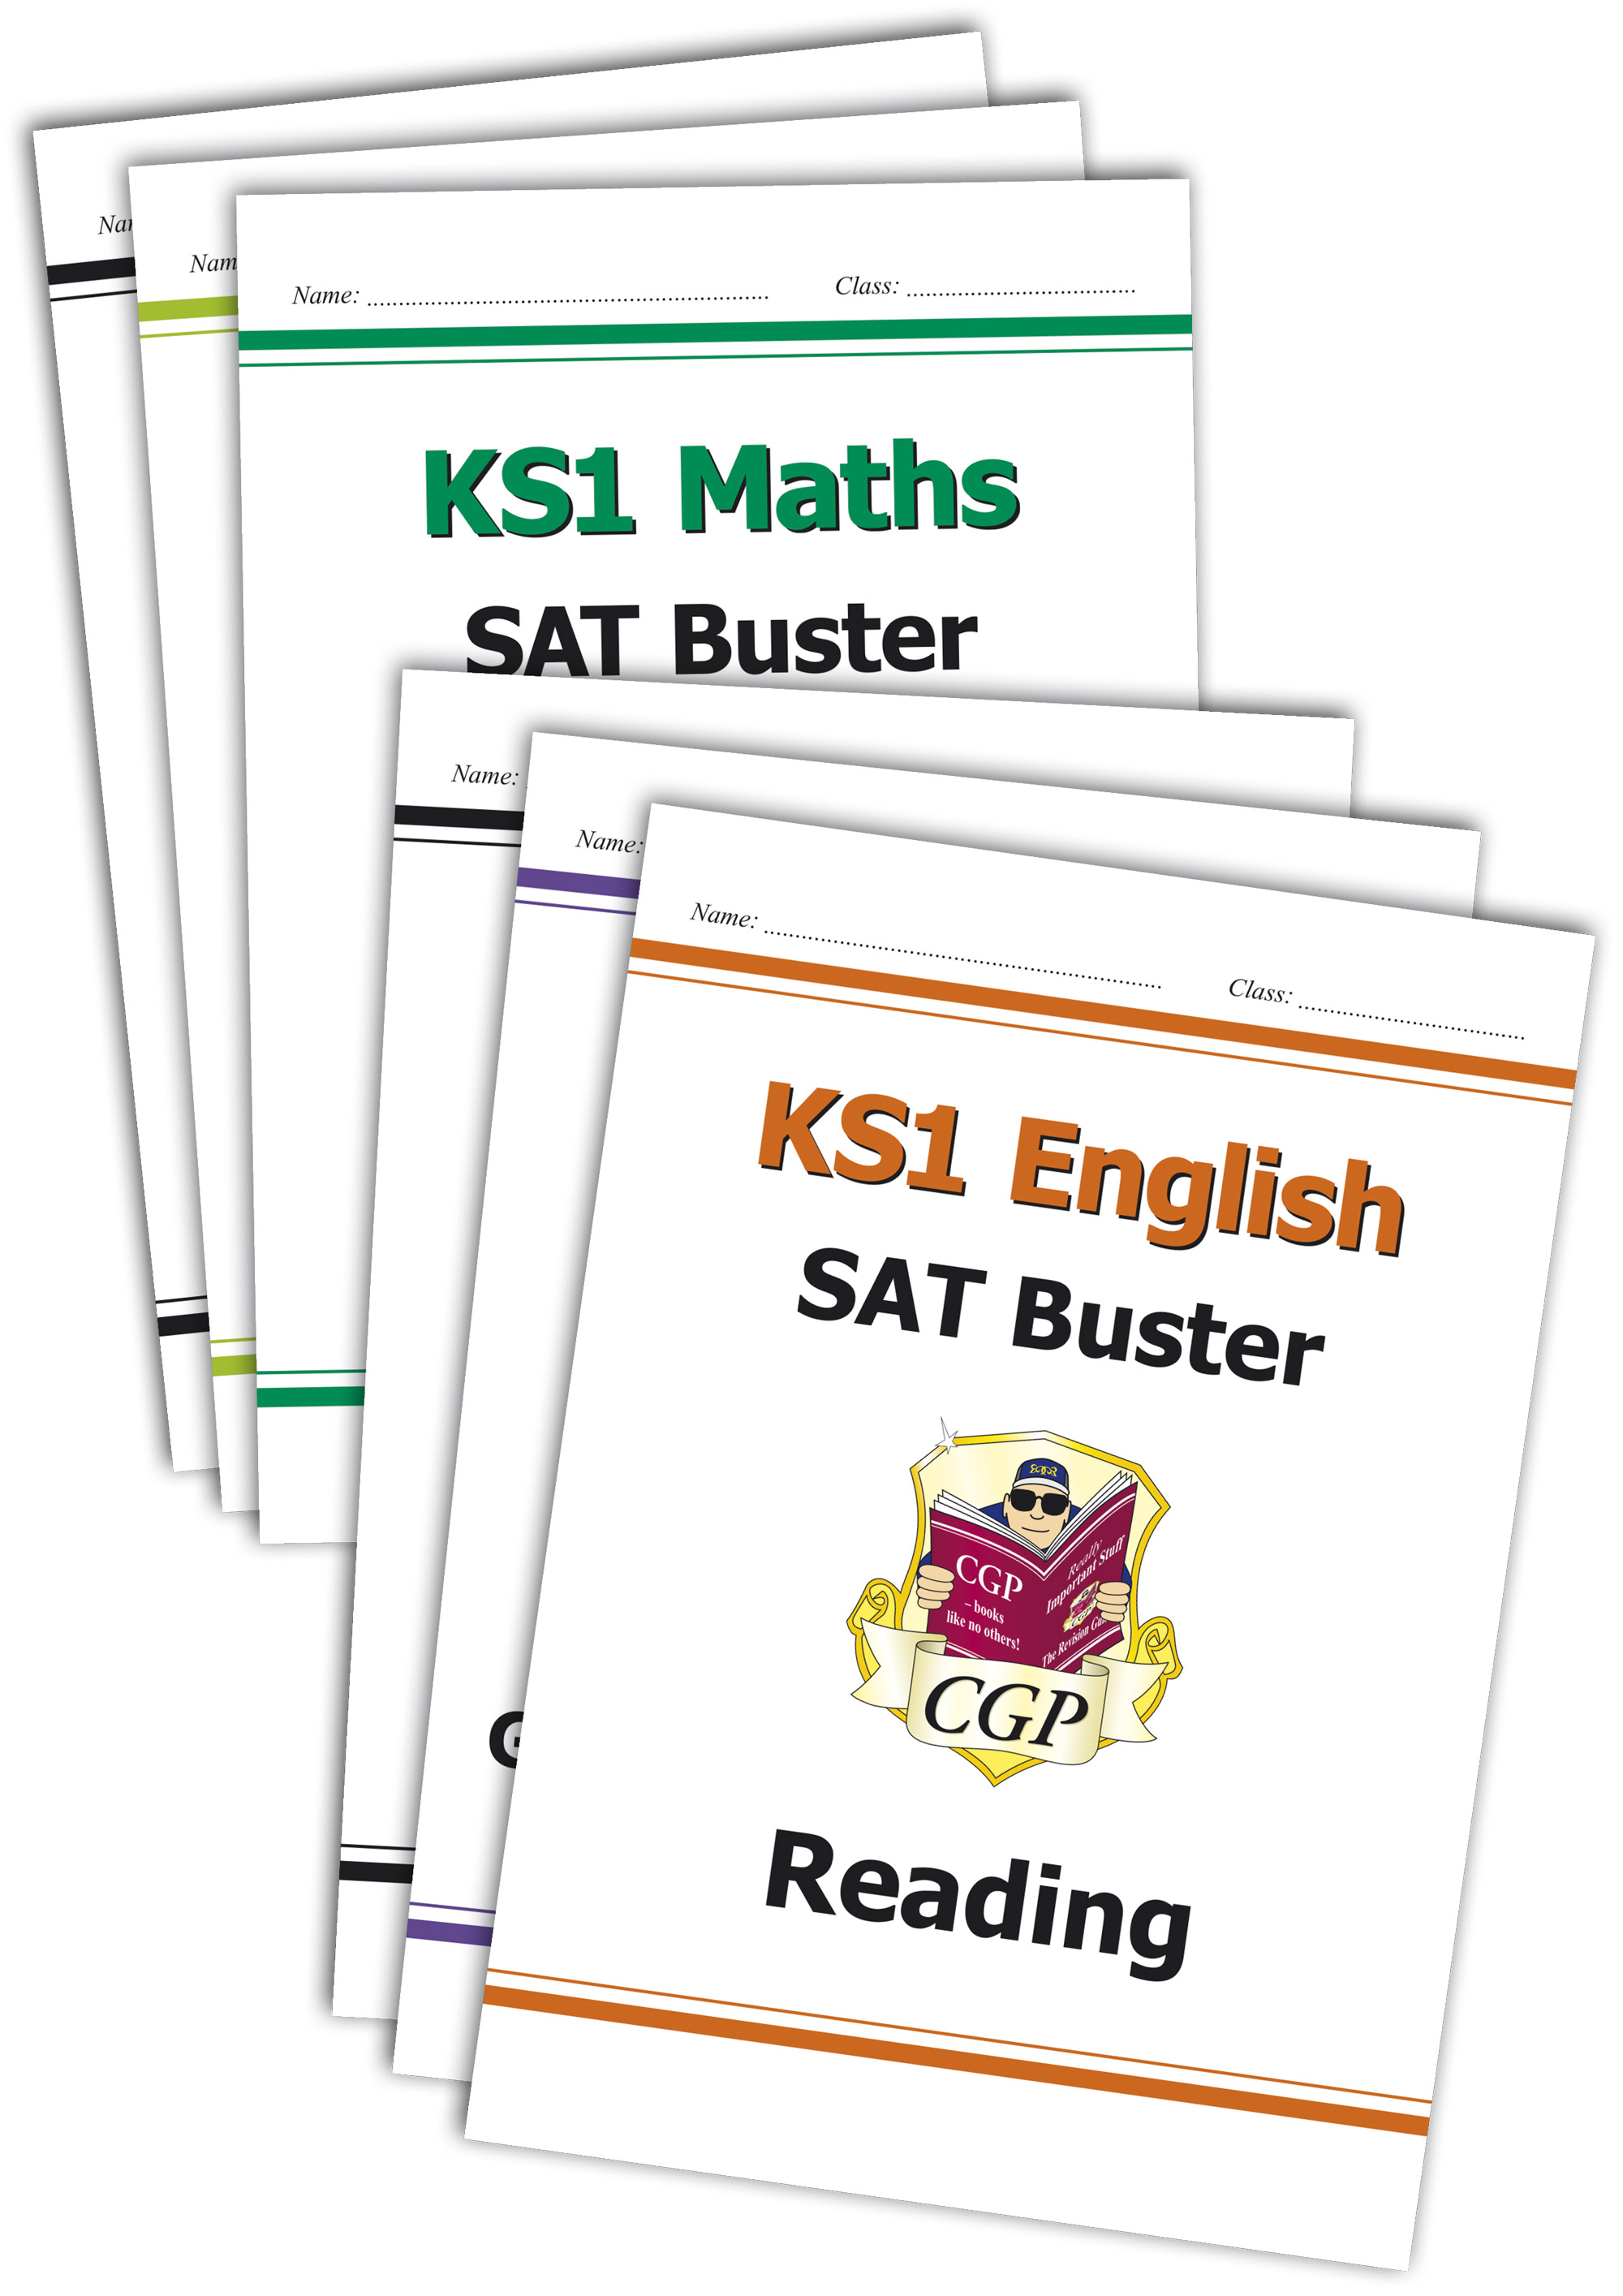 EM2B11 - Complete KS1 Maths & English SAT Buster Bundle - incl answers (for the 2021 tests)